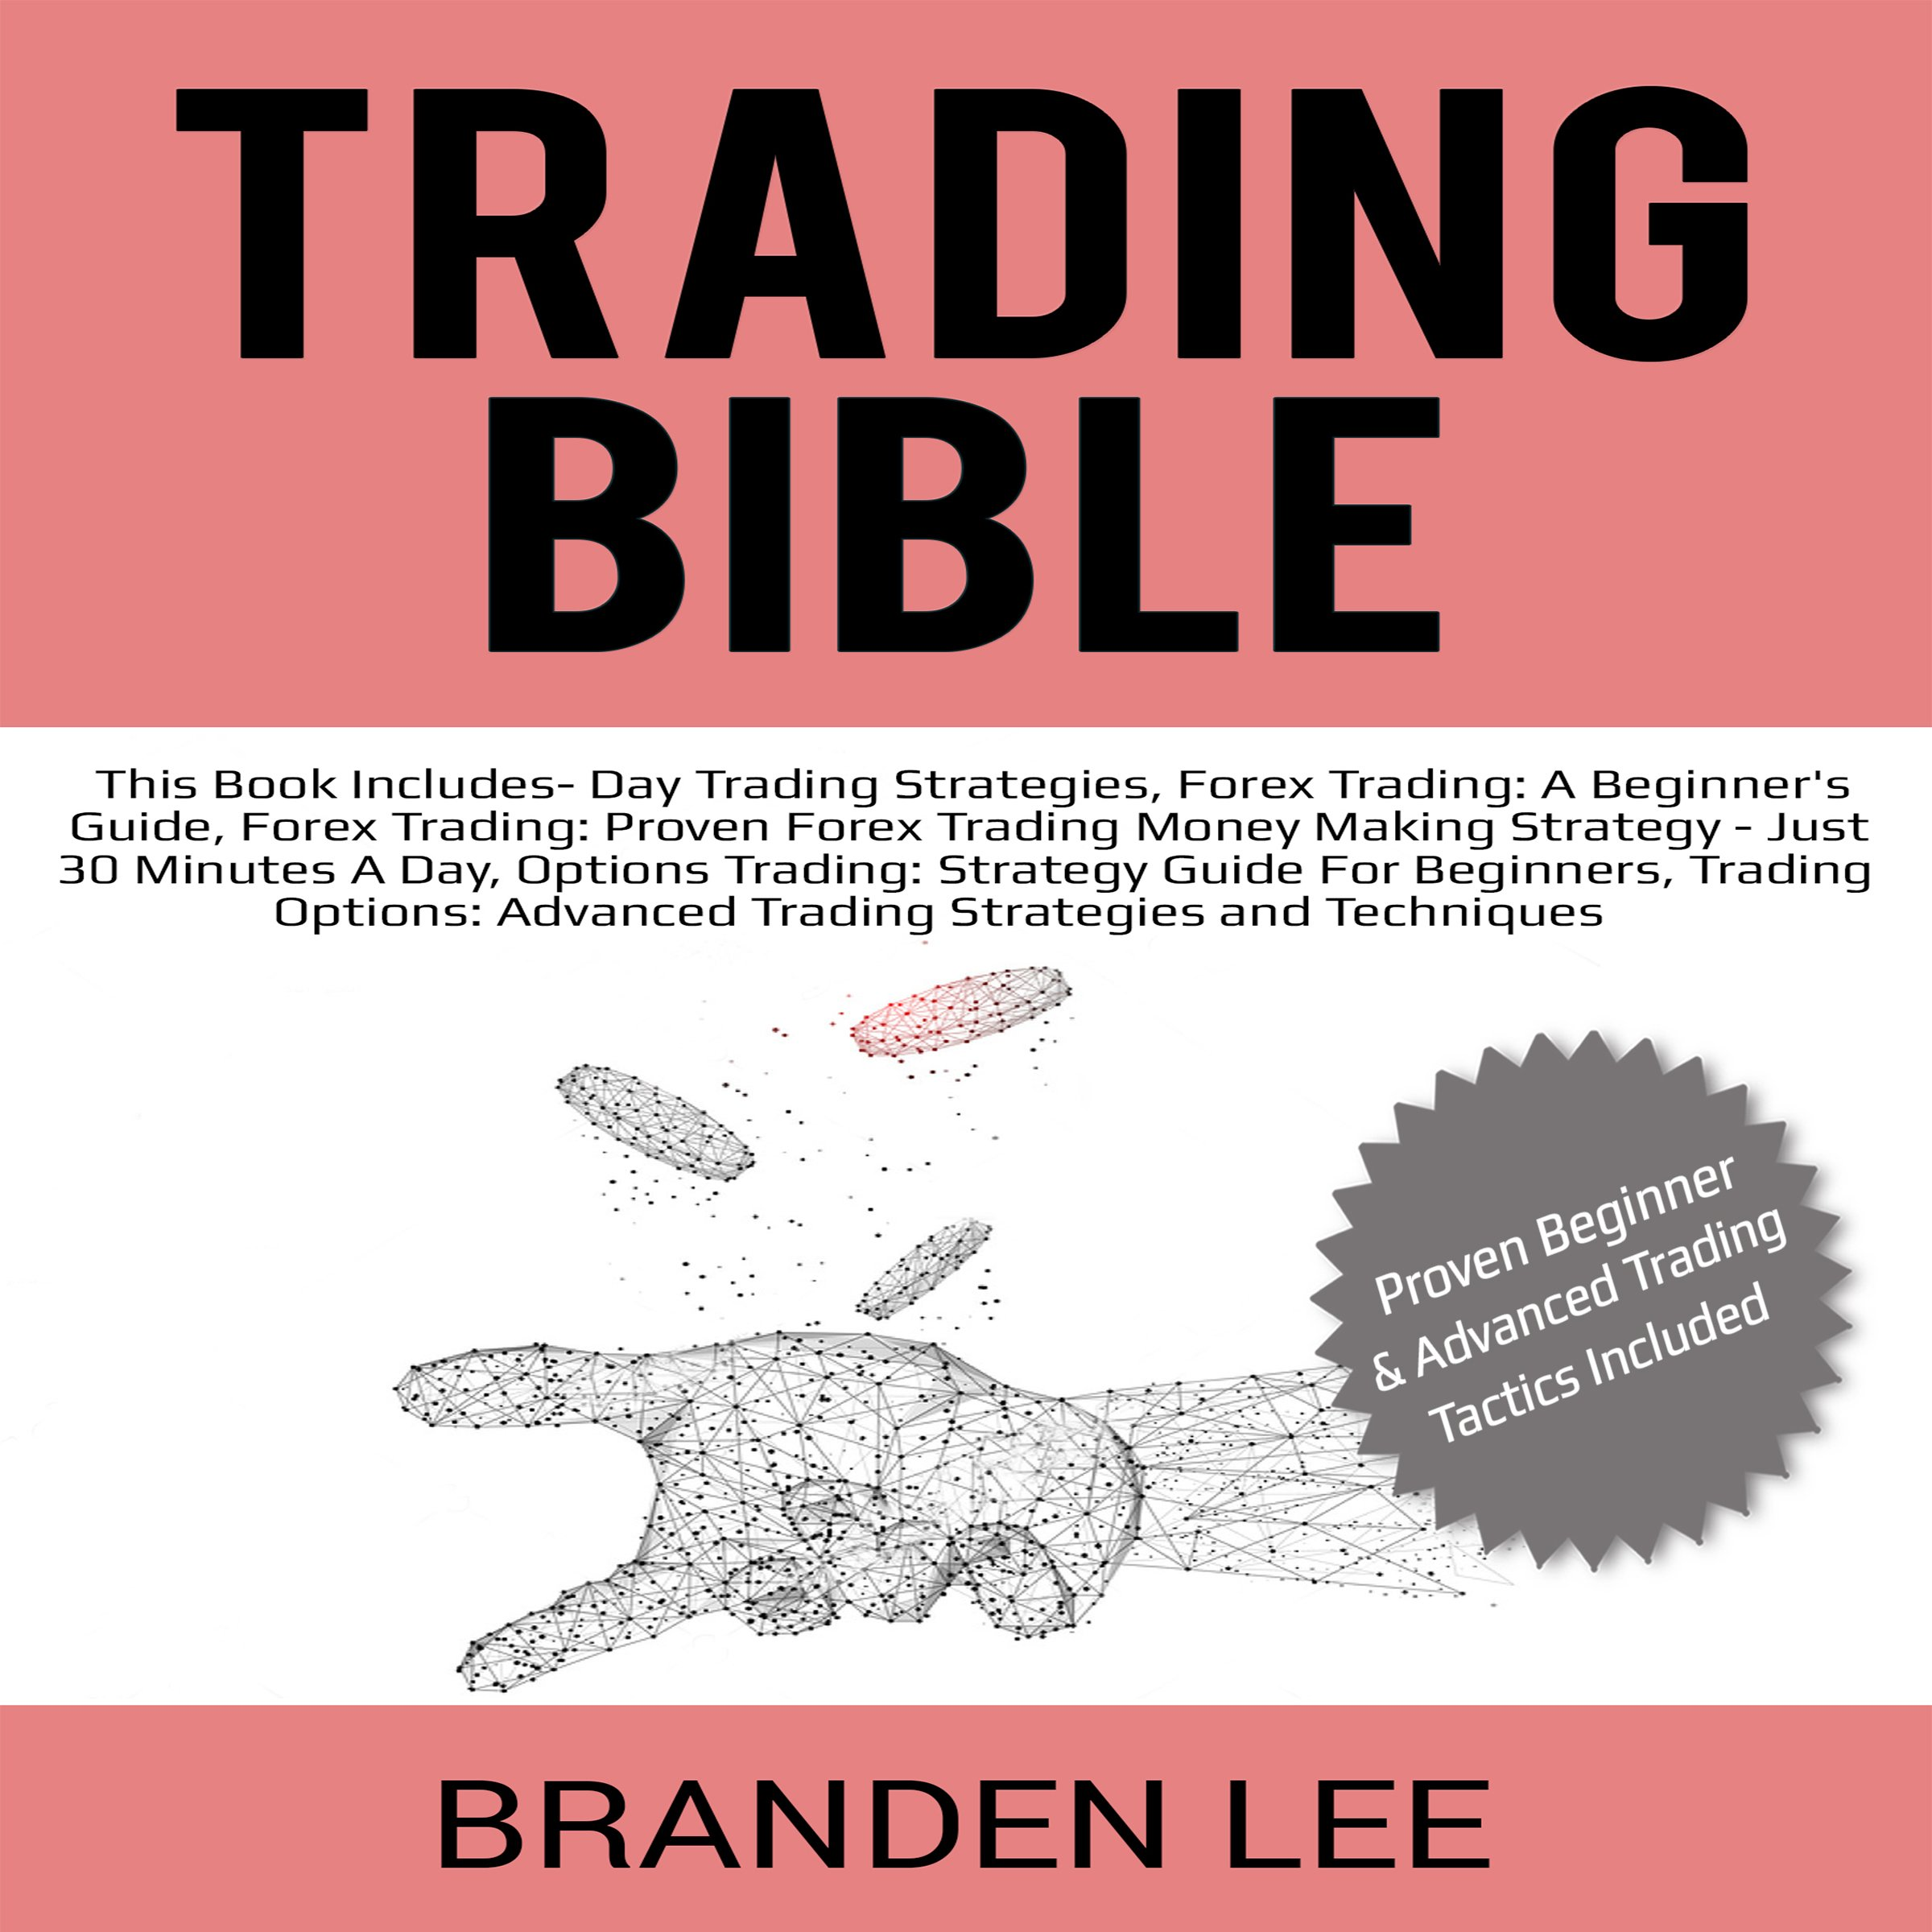 Trading Bible: This Book Includes - Day Trading Strategies, Forex for Beginners', Forex Advanced, Options for Beginners', and Options Trading for Advanced Traders